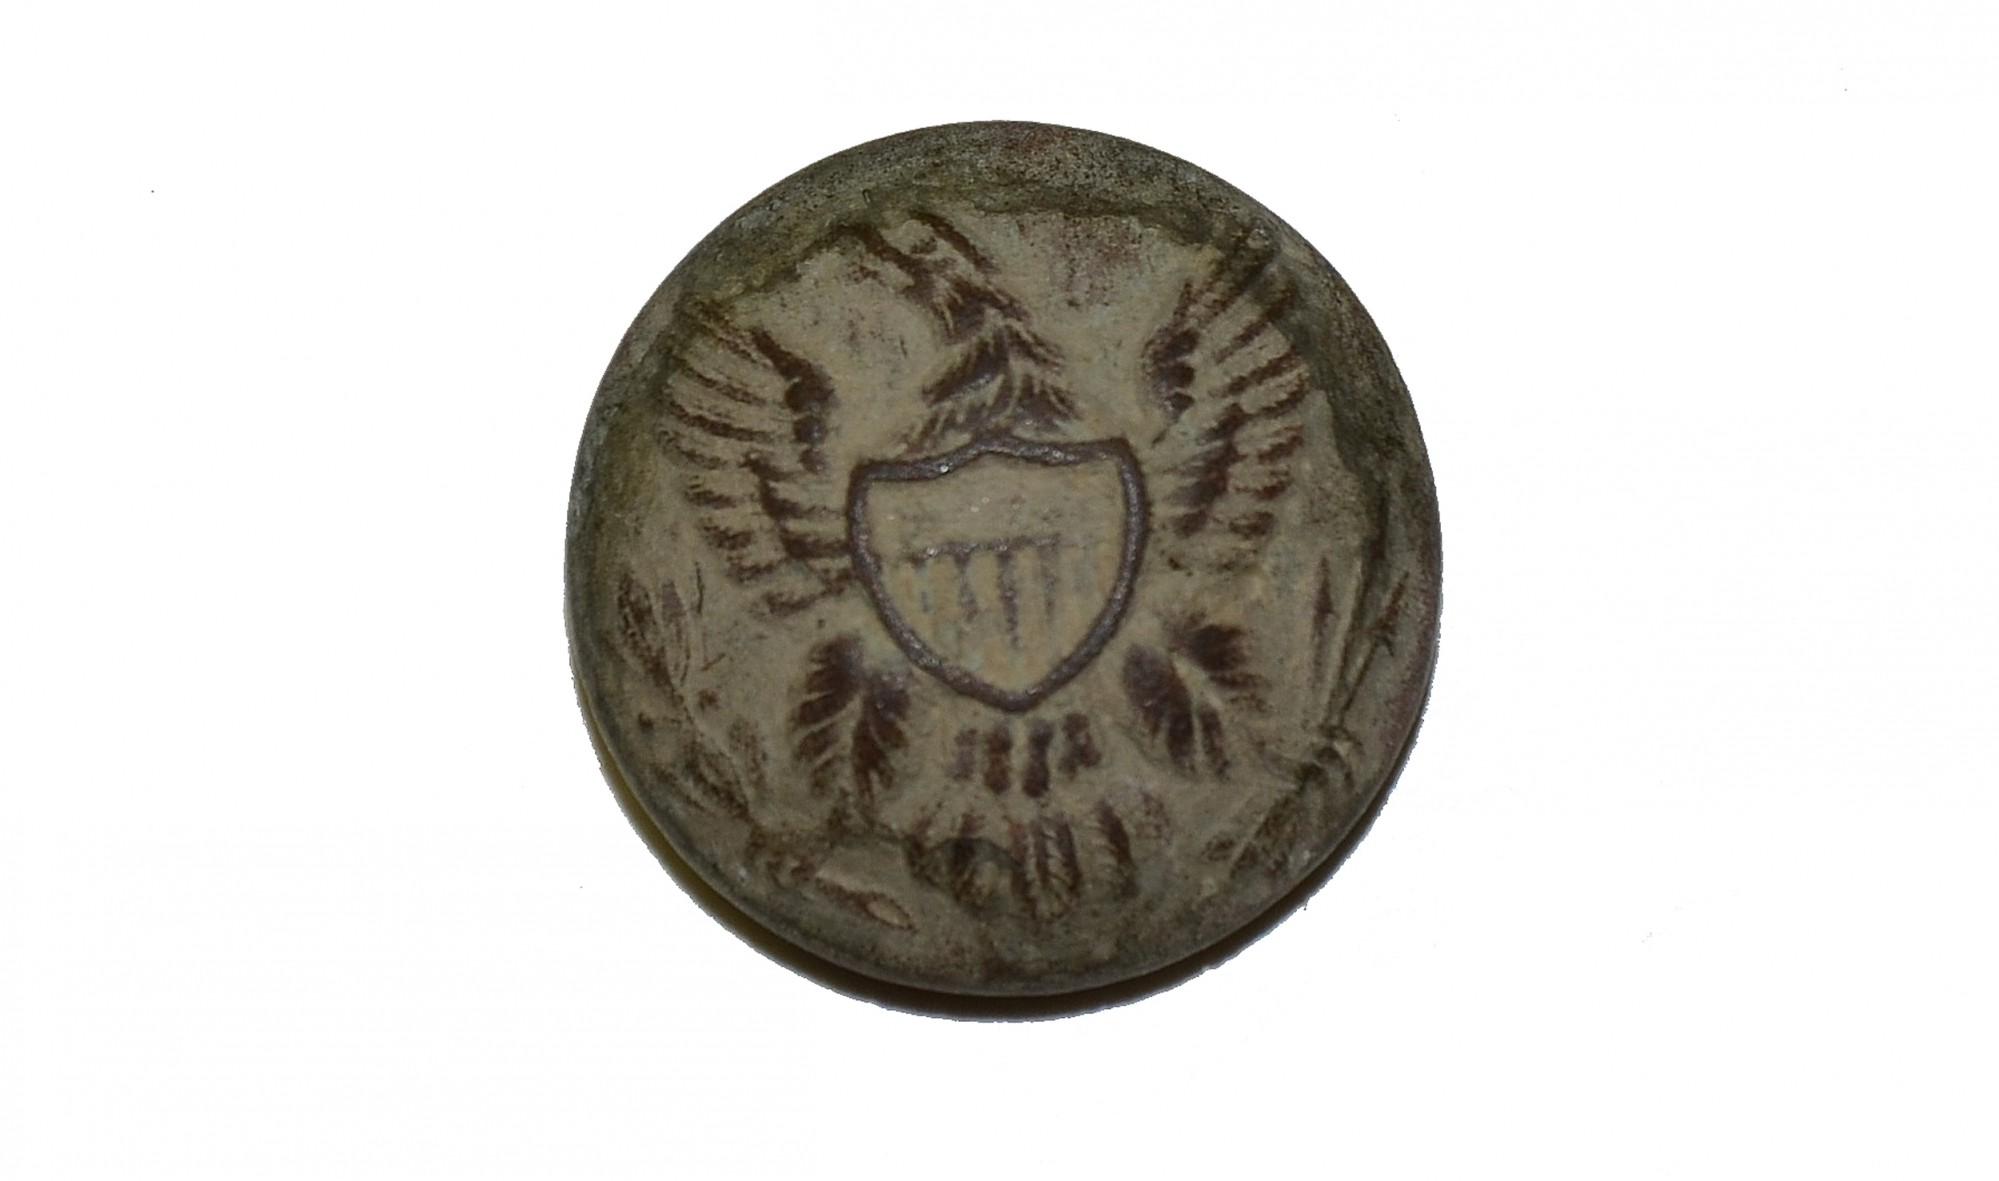 US INFANTRY GENERAL SERVICE EAGLE BUTTON RECOVERED AT LITTLE ROUND TOP